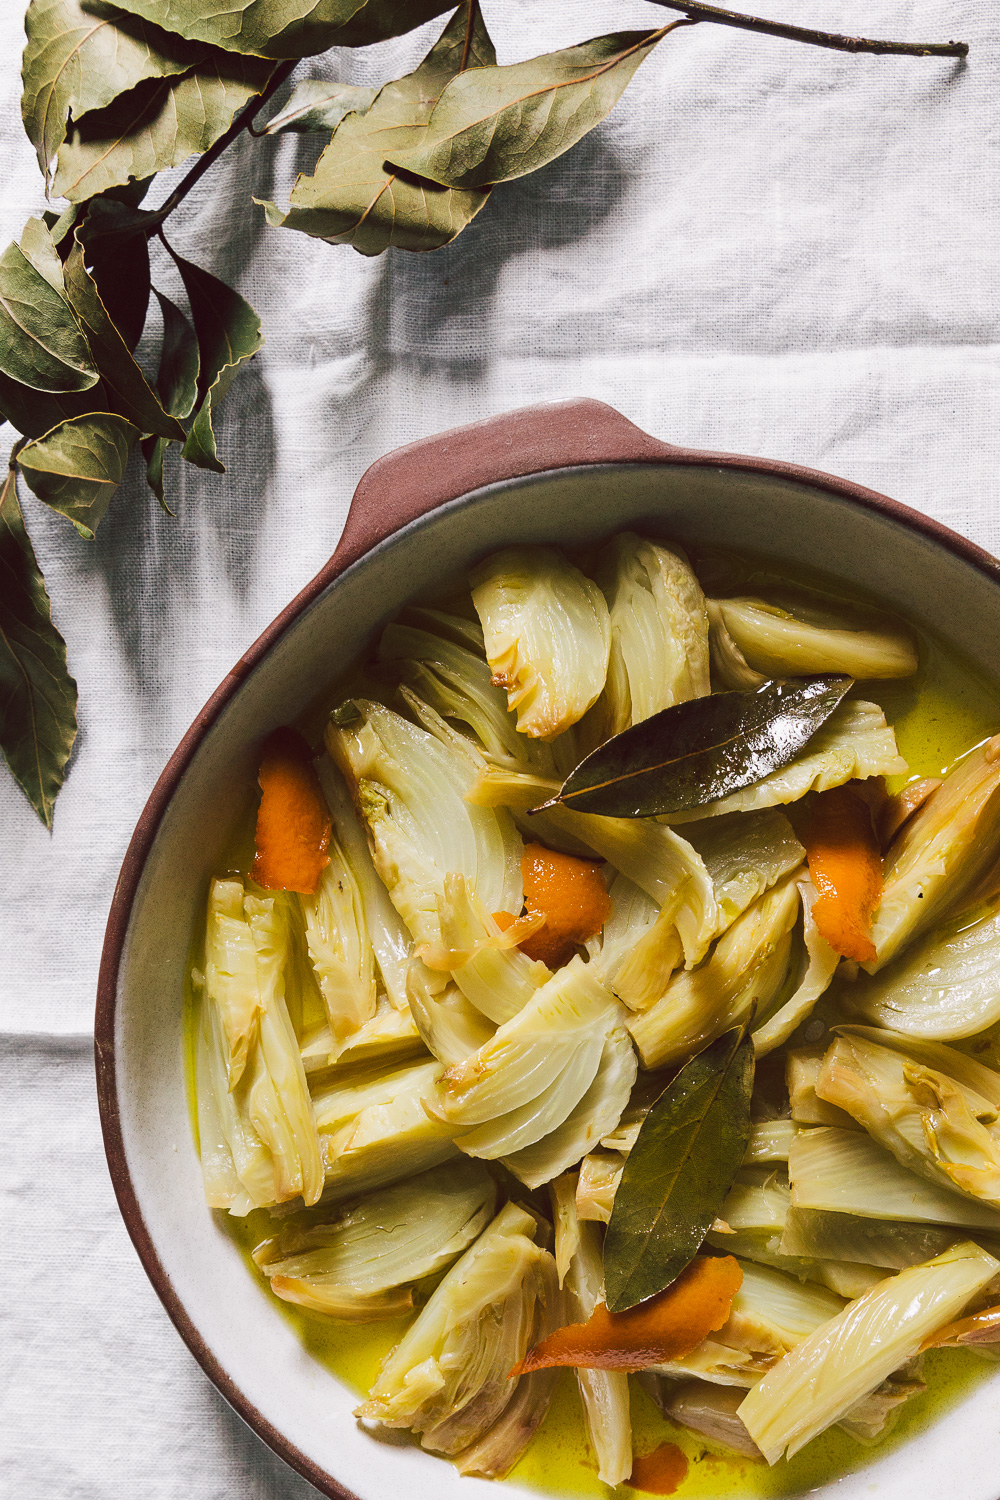 Fennel Confit by Olaiya Land